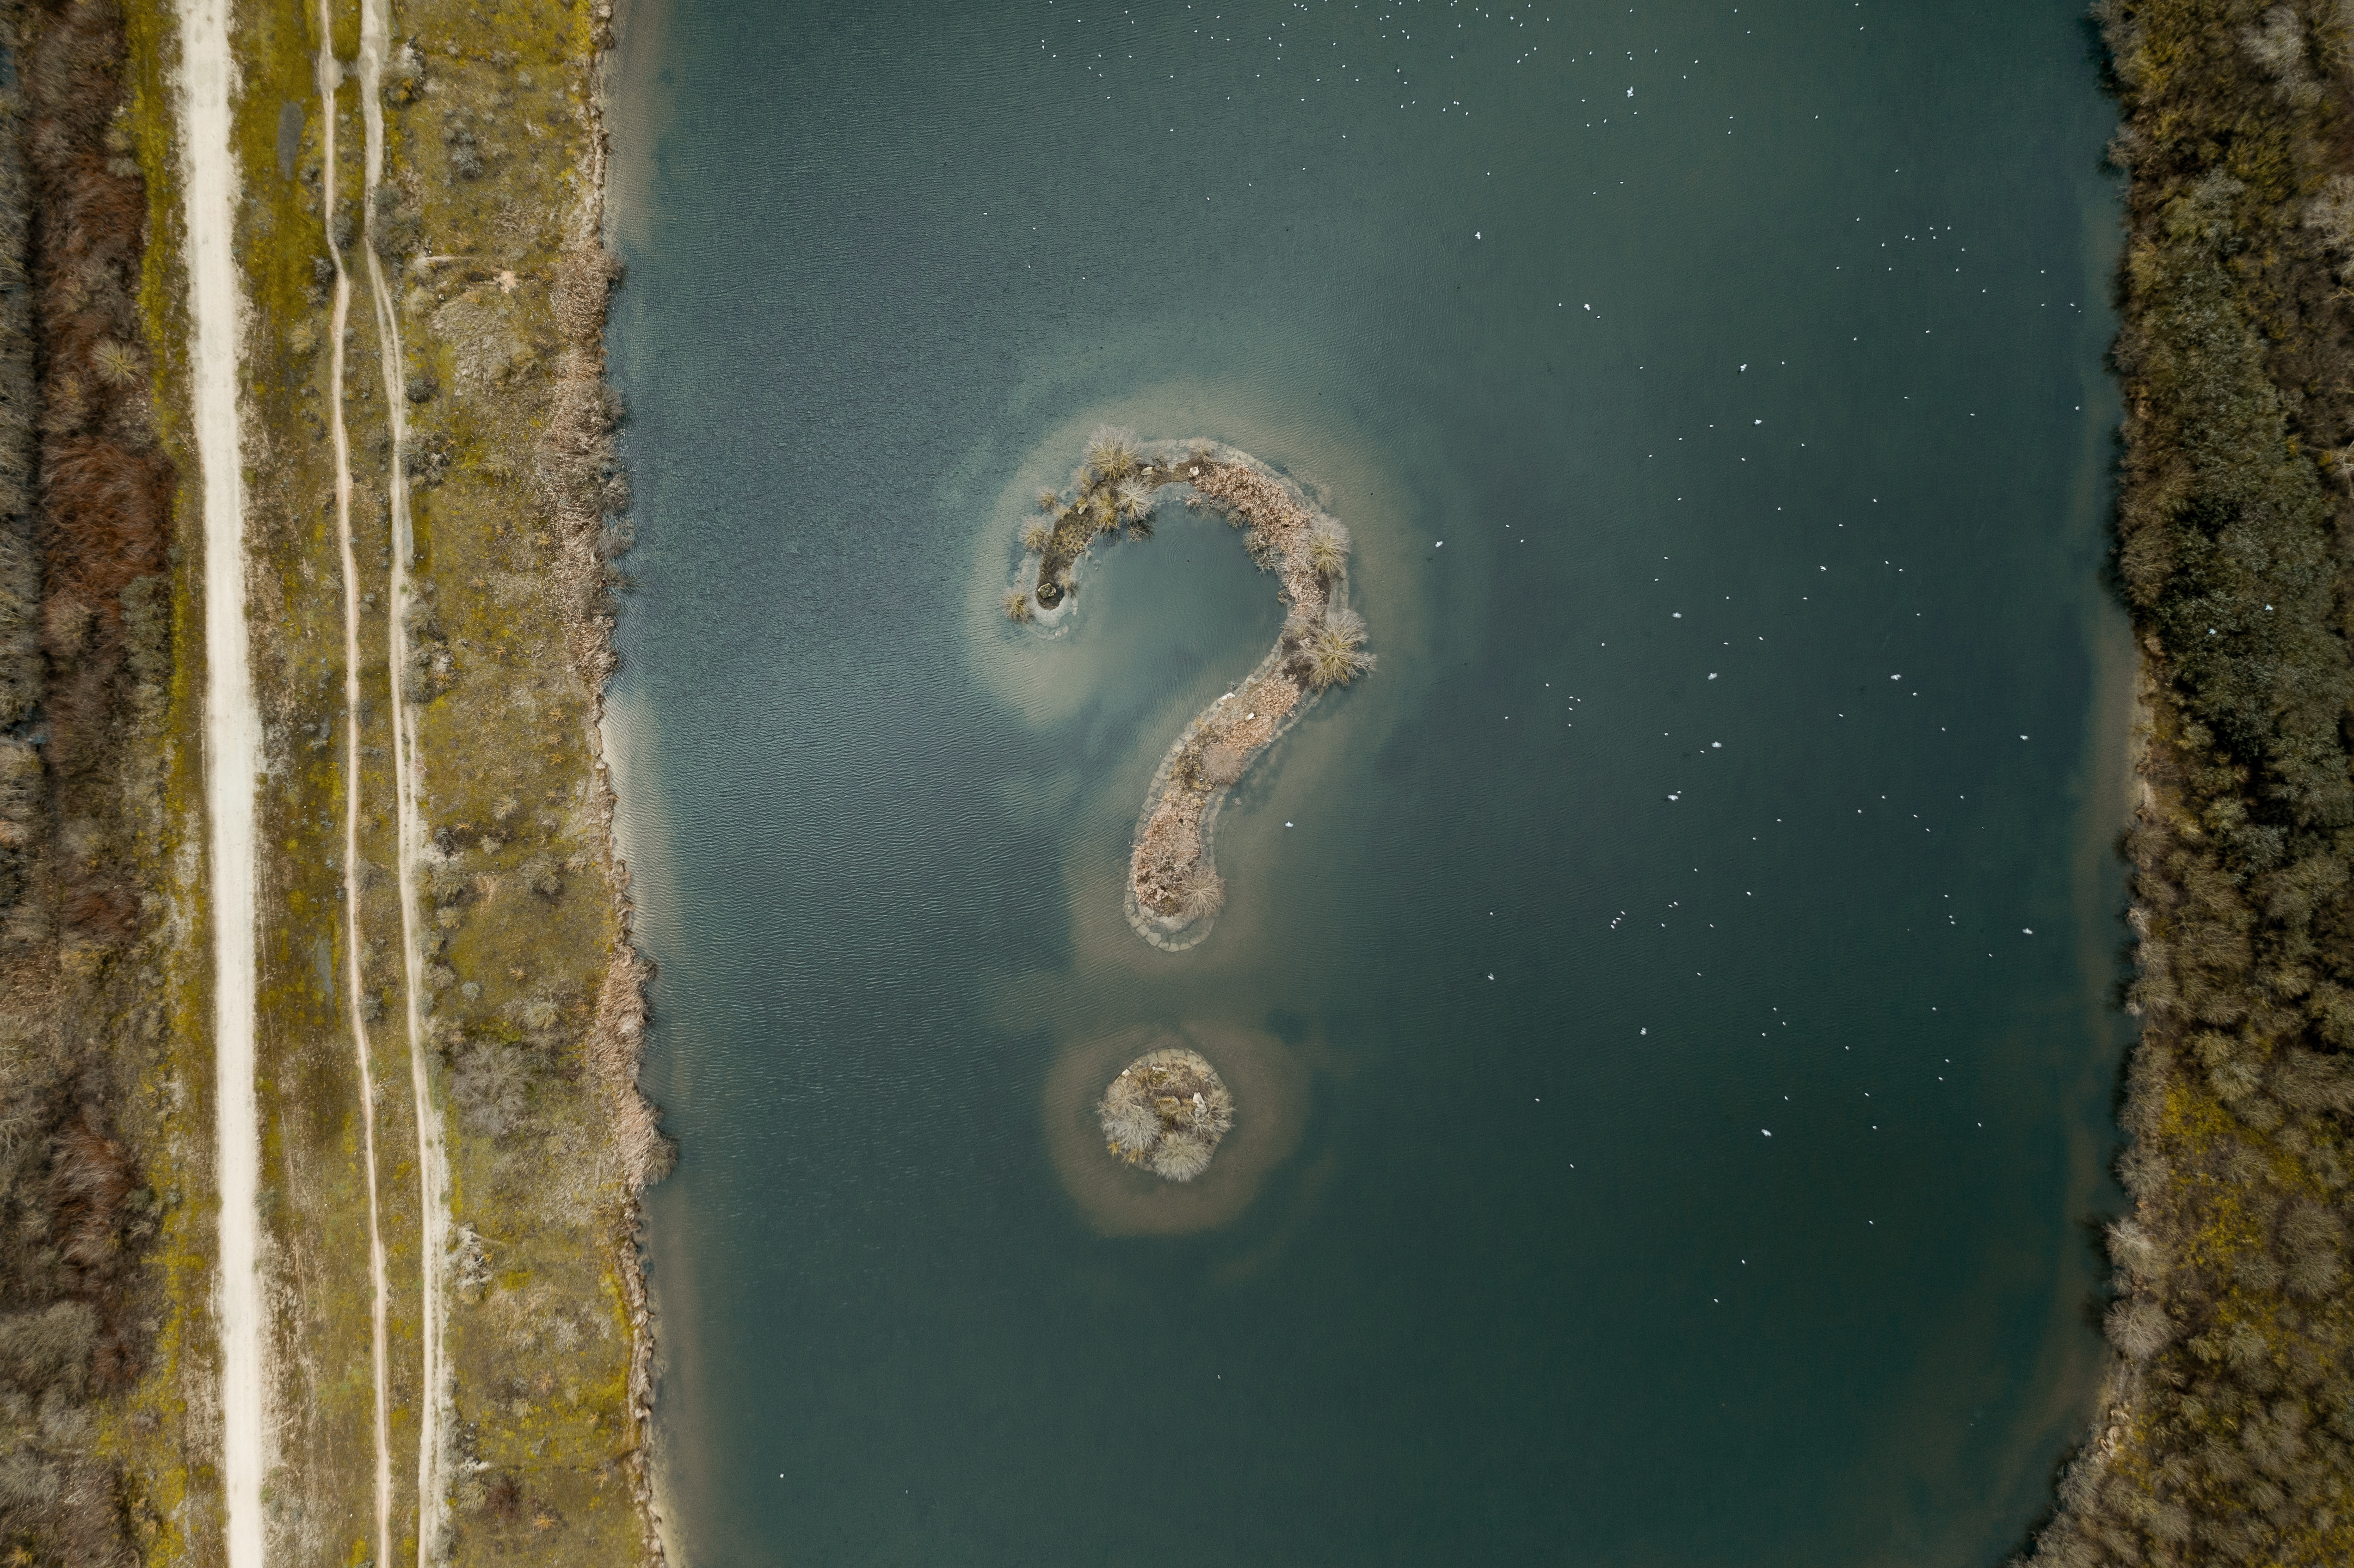 Islands shaped like question mark in lake